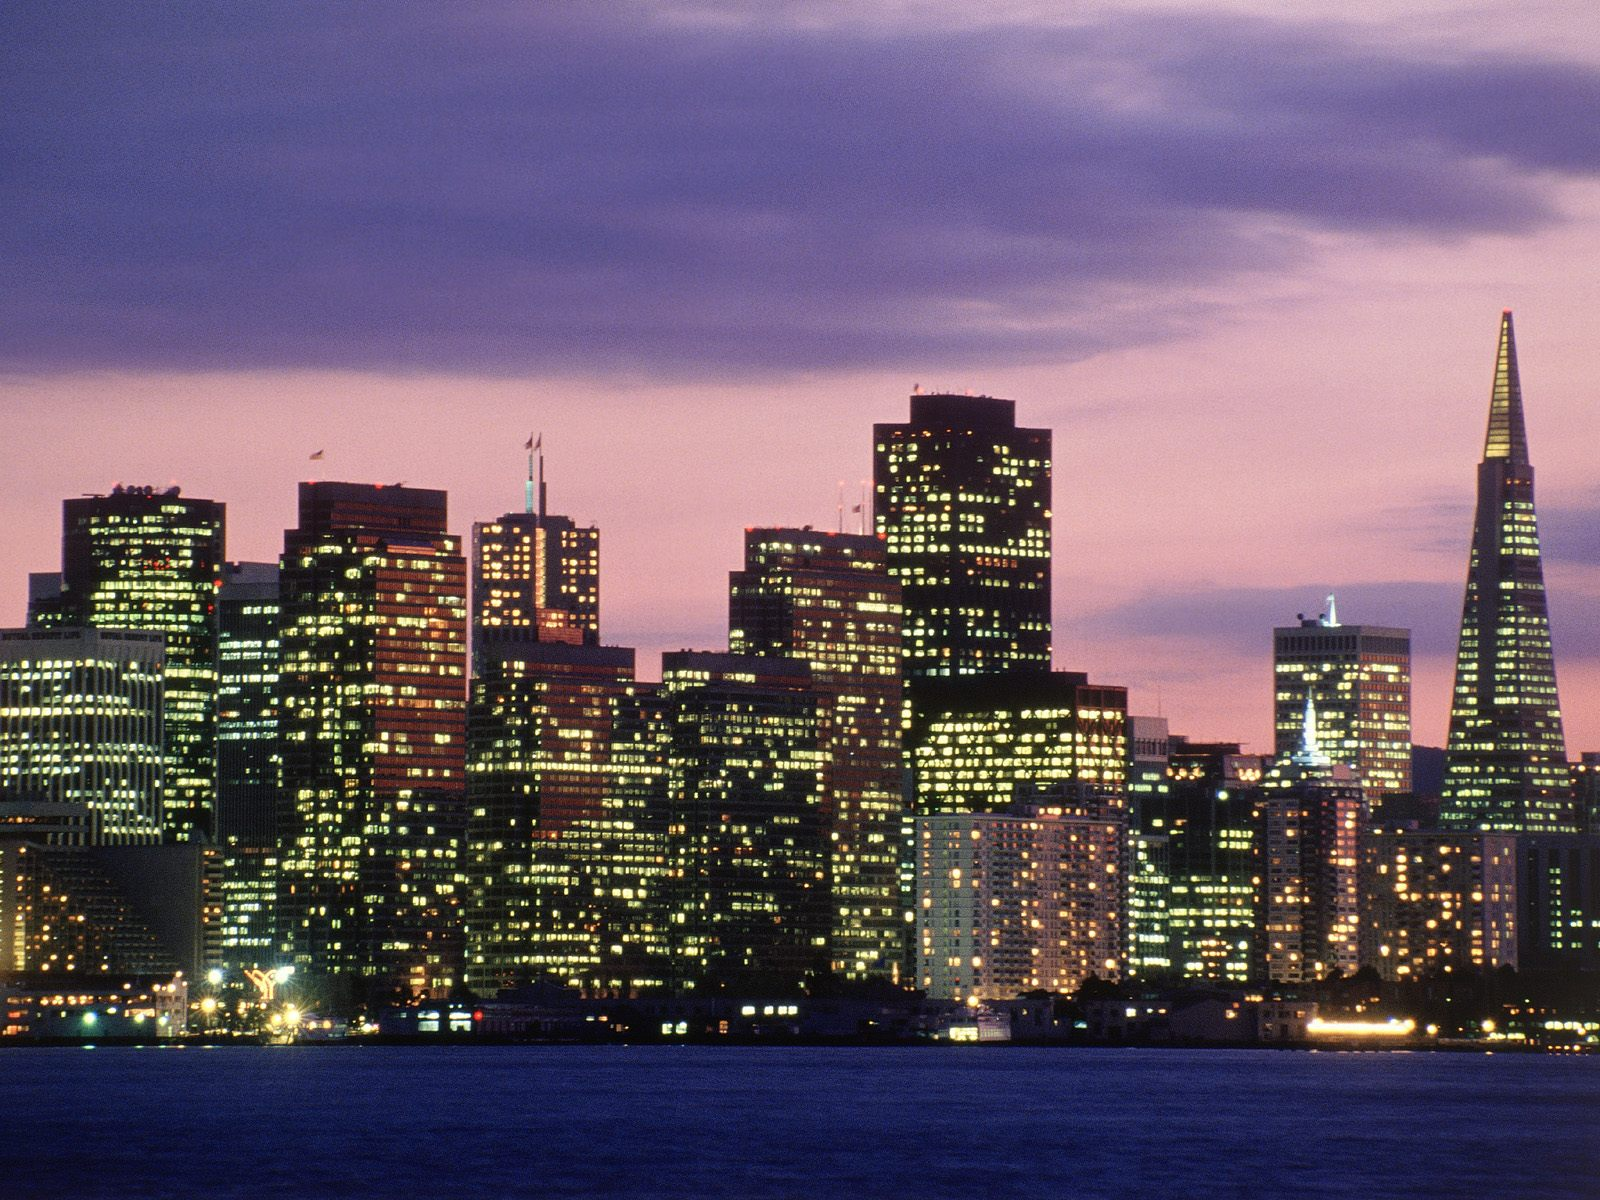 http://1.bp.blogspot.com/-1AVTUUbZXSA/UMxGa3Z1DzI/AAAAAAAACw8/5VAp8egkjRQ/s1600/The_City_by_the_Bay_San_Francisco_California.jpg